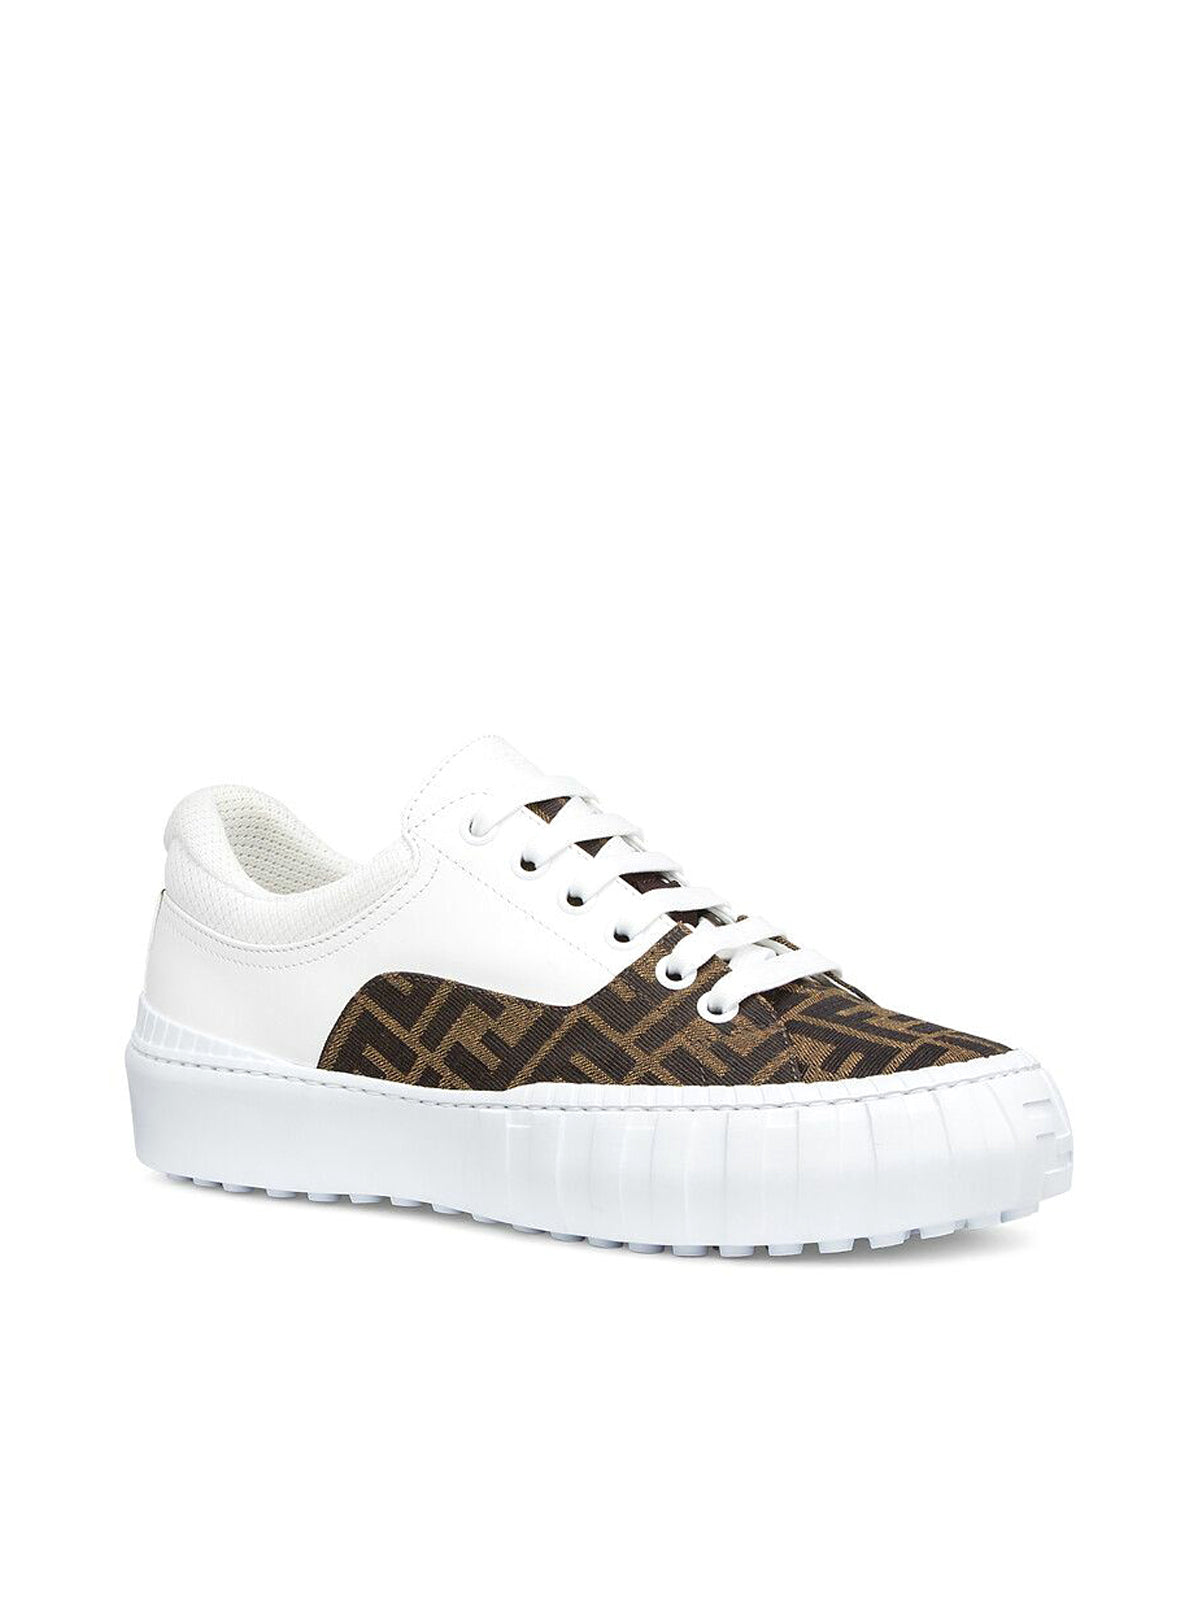 SNEAKER in brown fabric